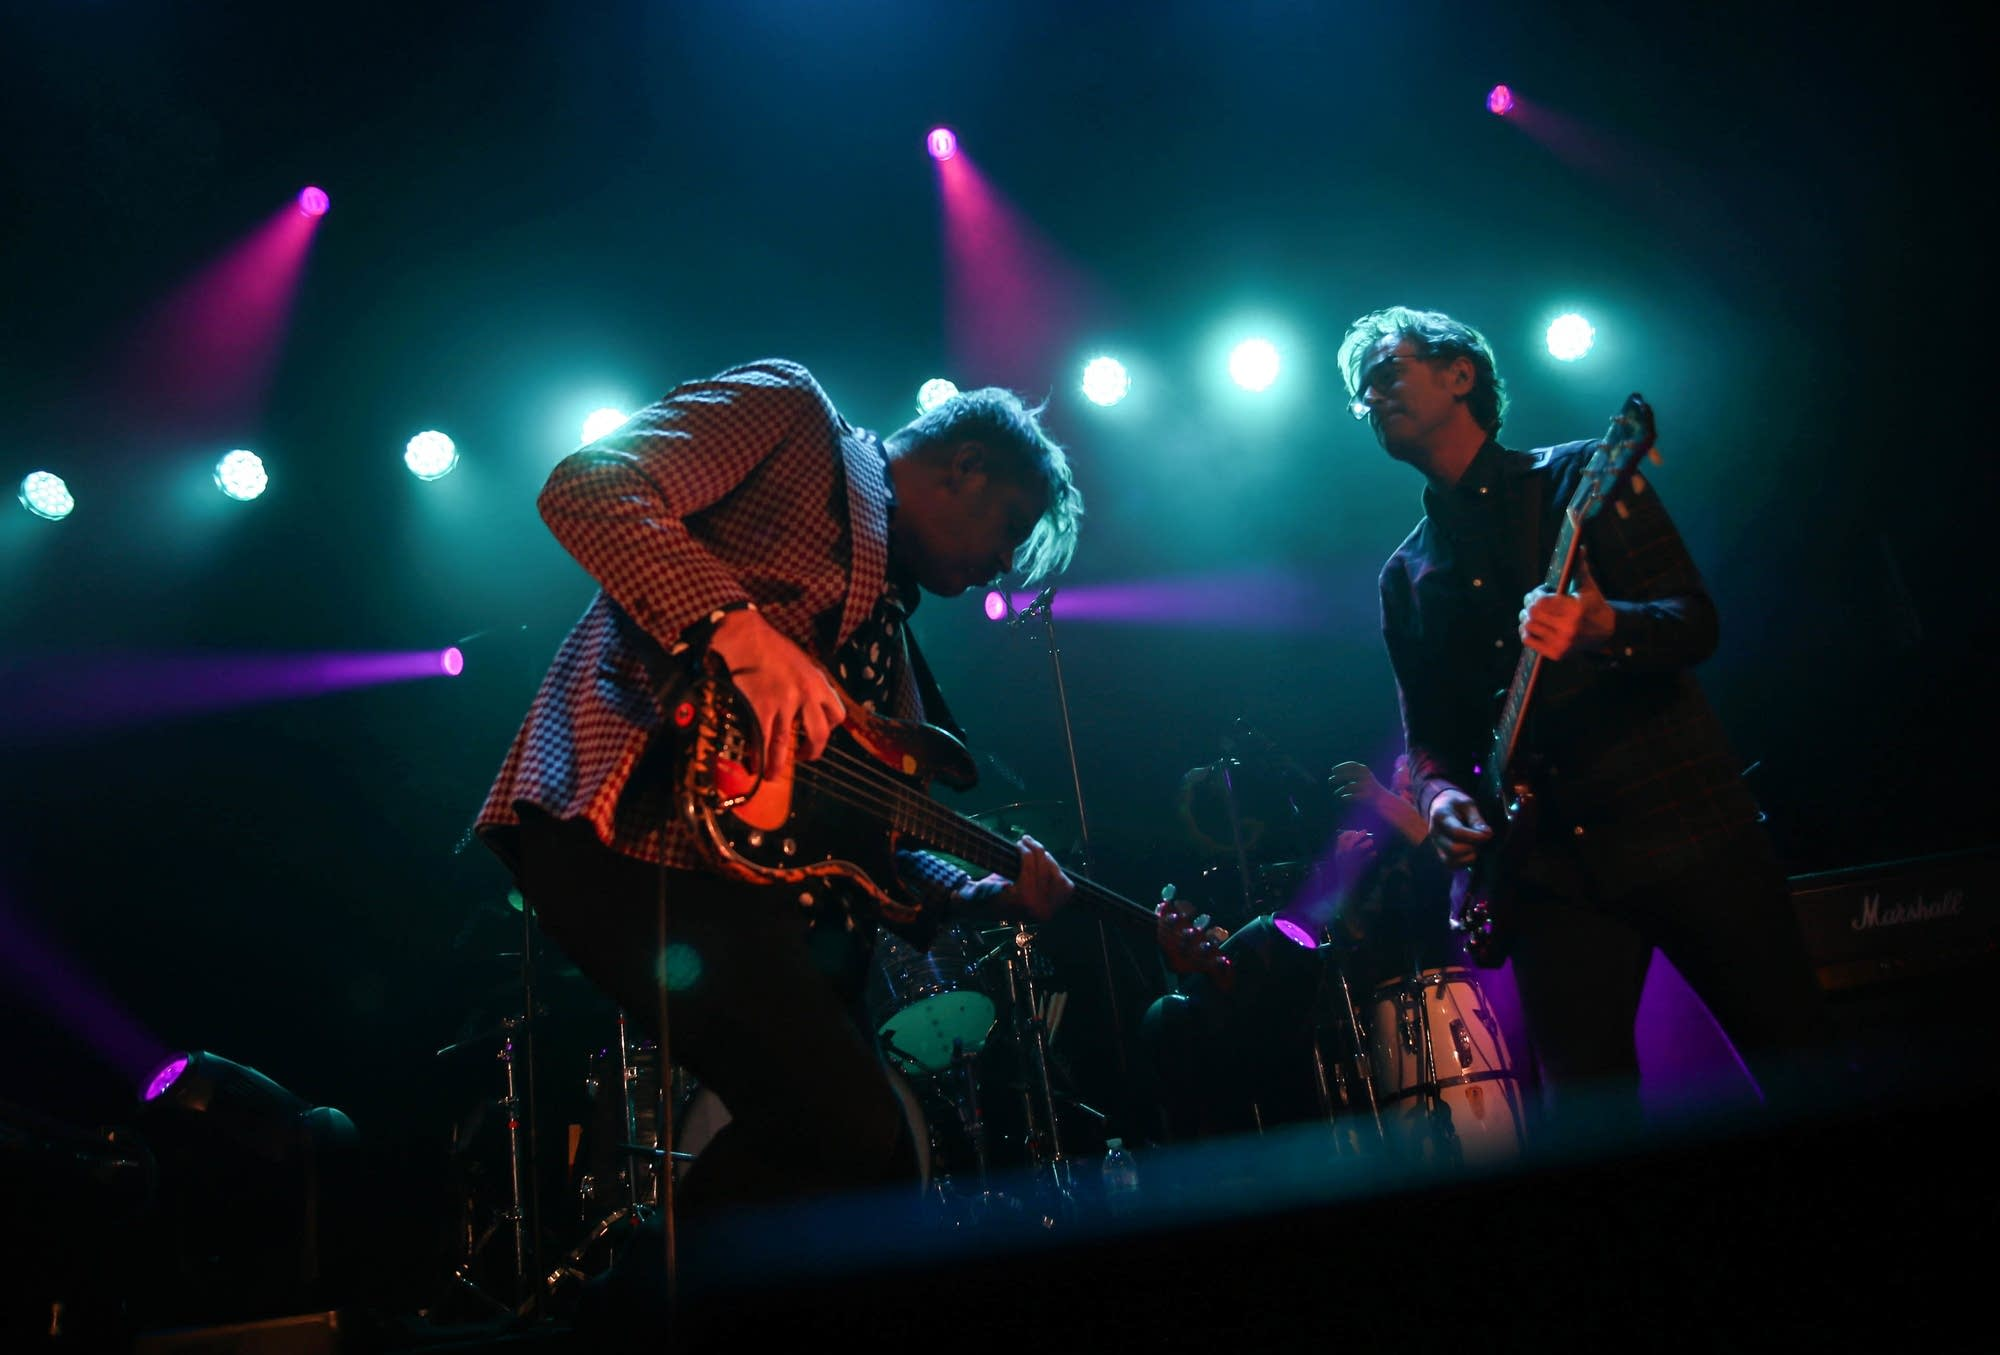 Semisonic performing at First Avenue